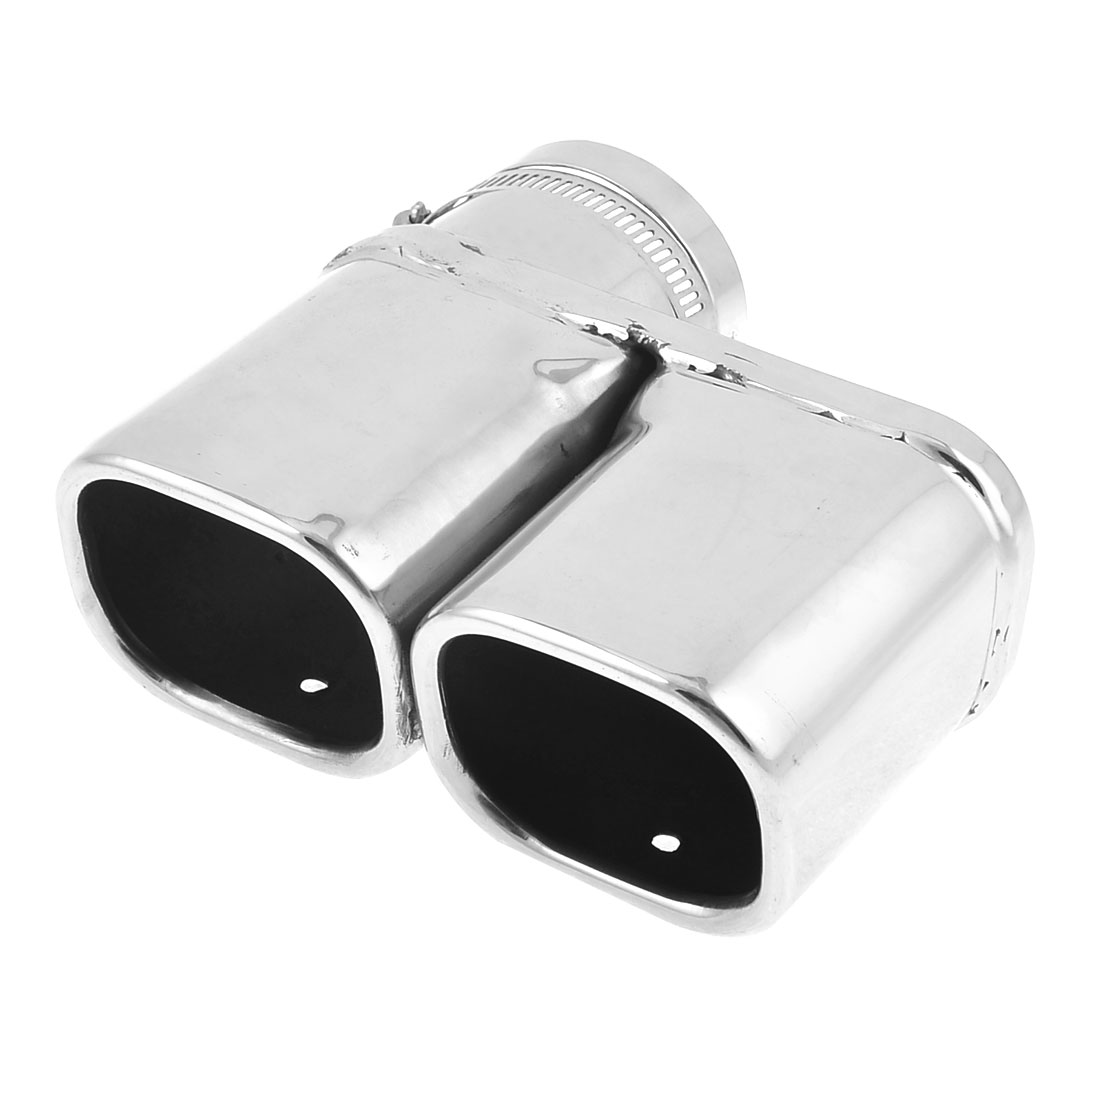 62mm Inlet Dia Two Outlet Stainless Steel Exhaust Muffler Tip for VW Lavida Octavia